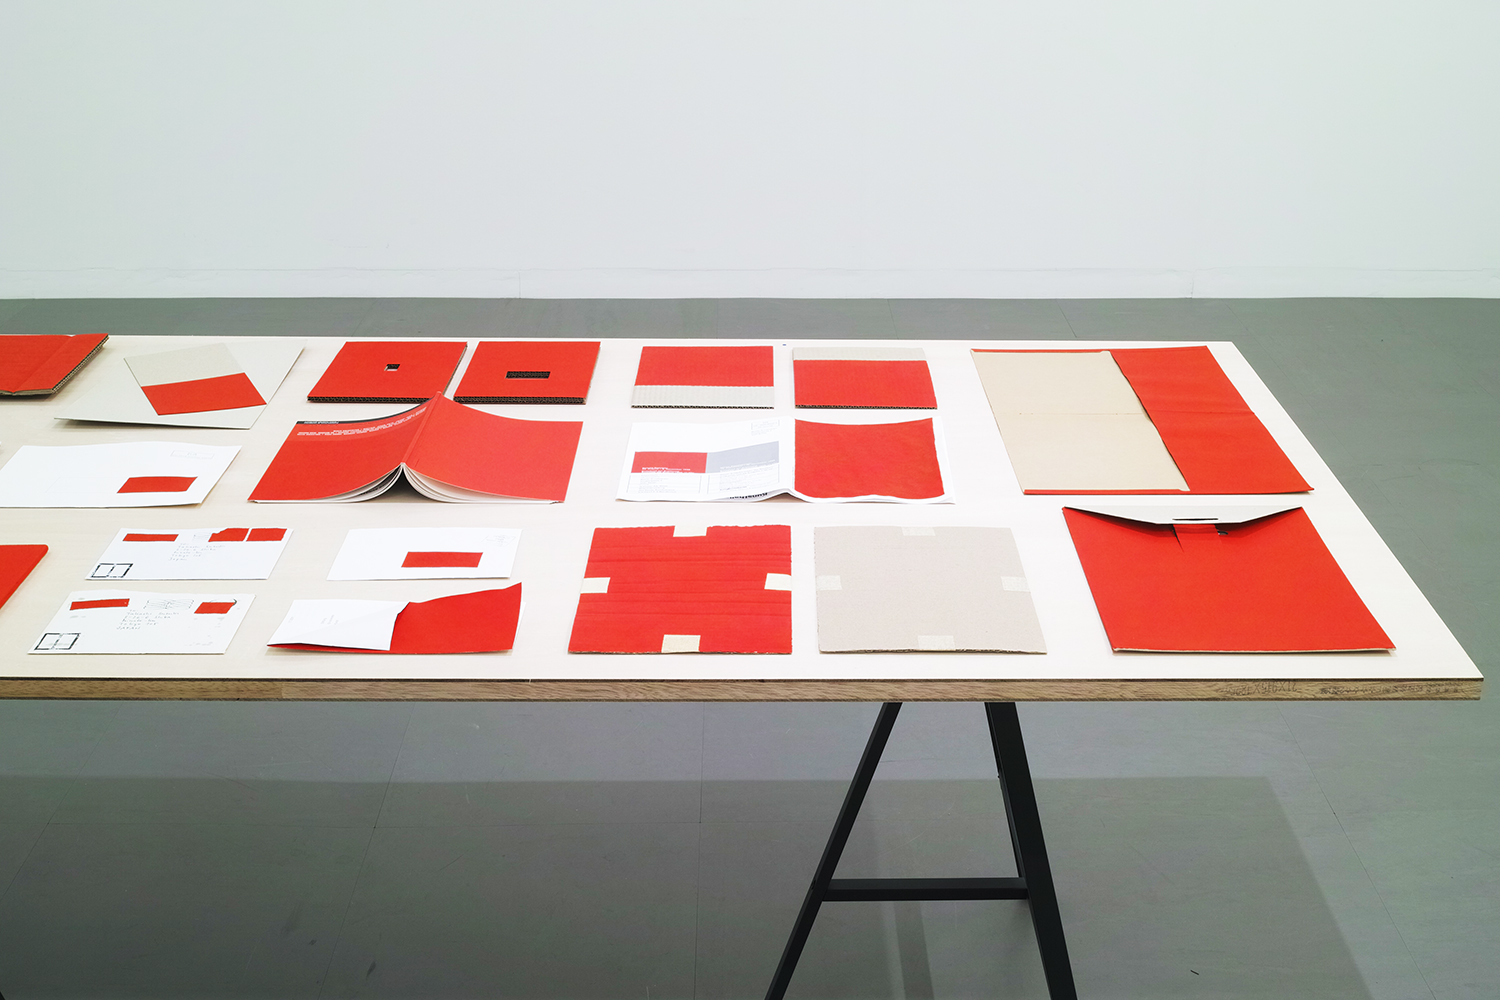 Installation view on table